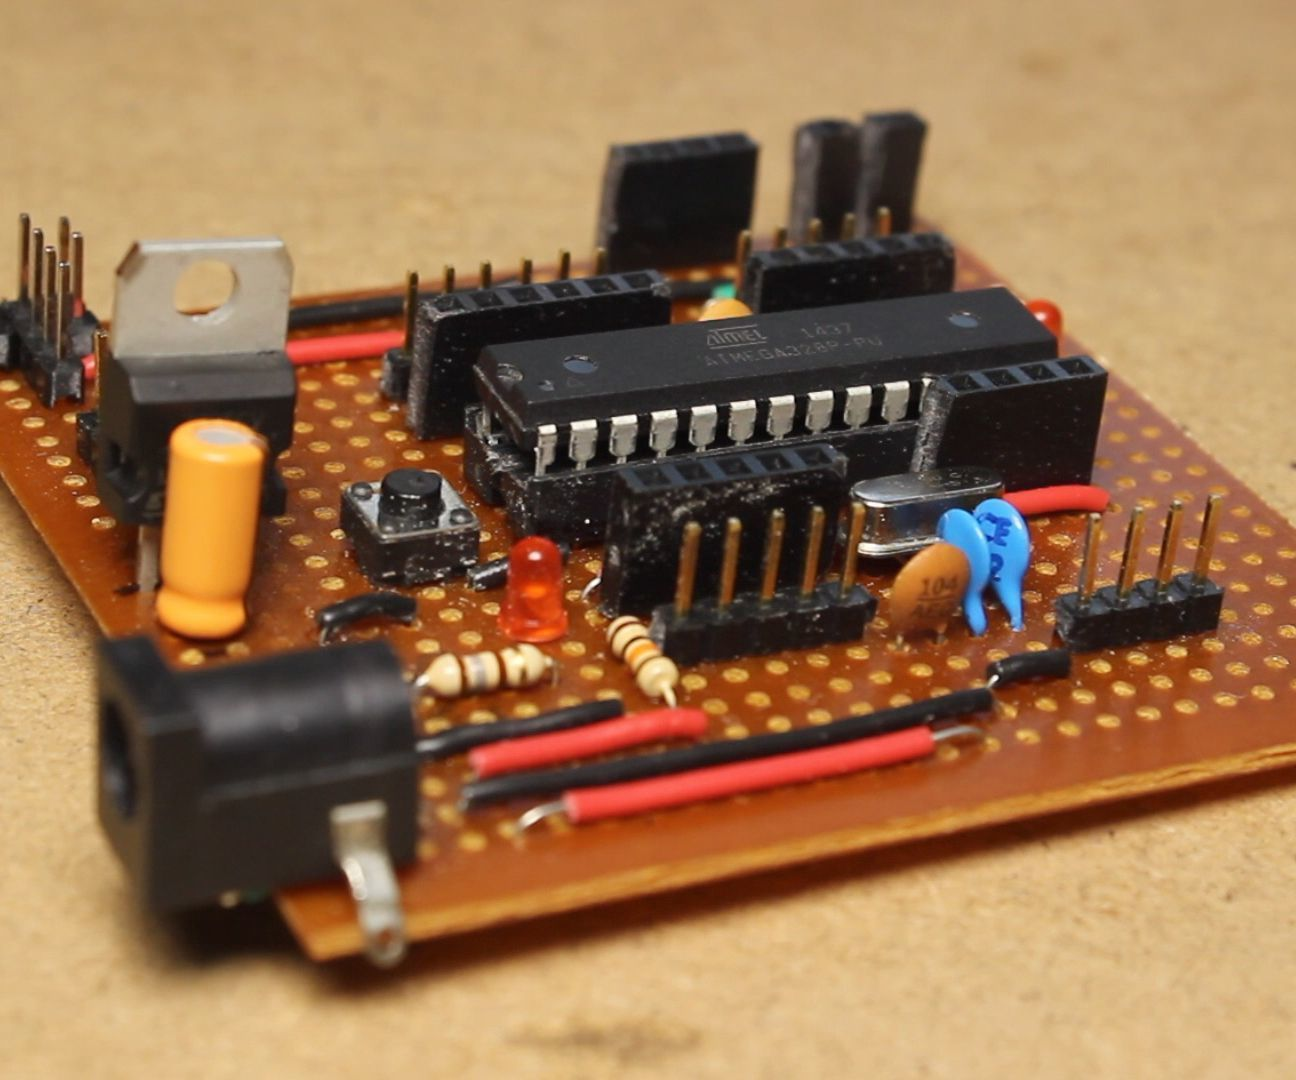 How To Make Your Own Arduino Uno Board Breadboard Veroboard Circuit Images Programming